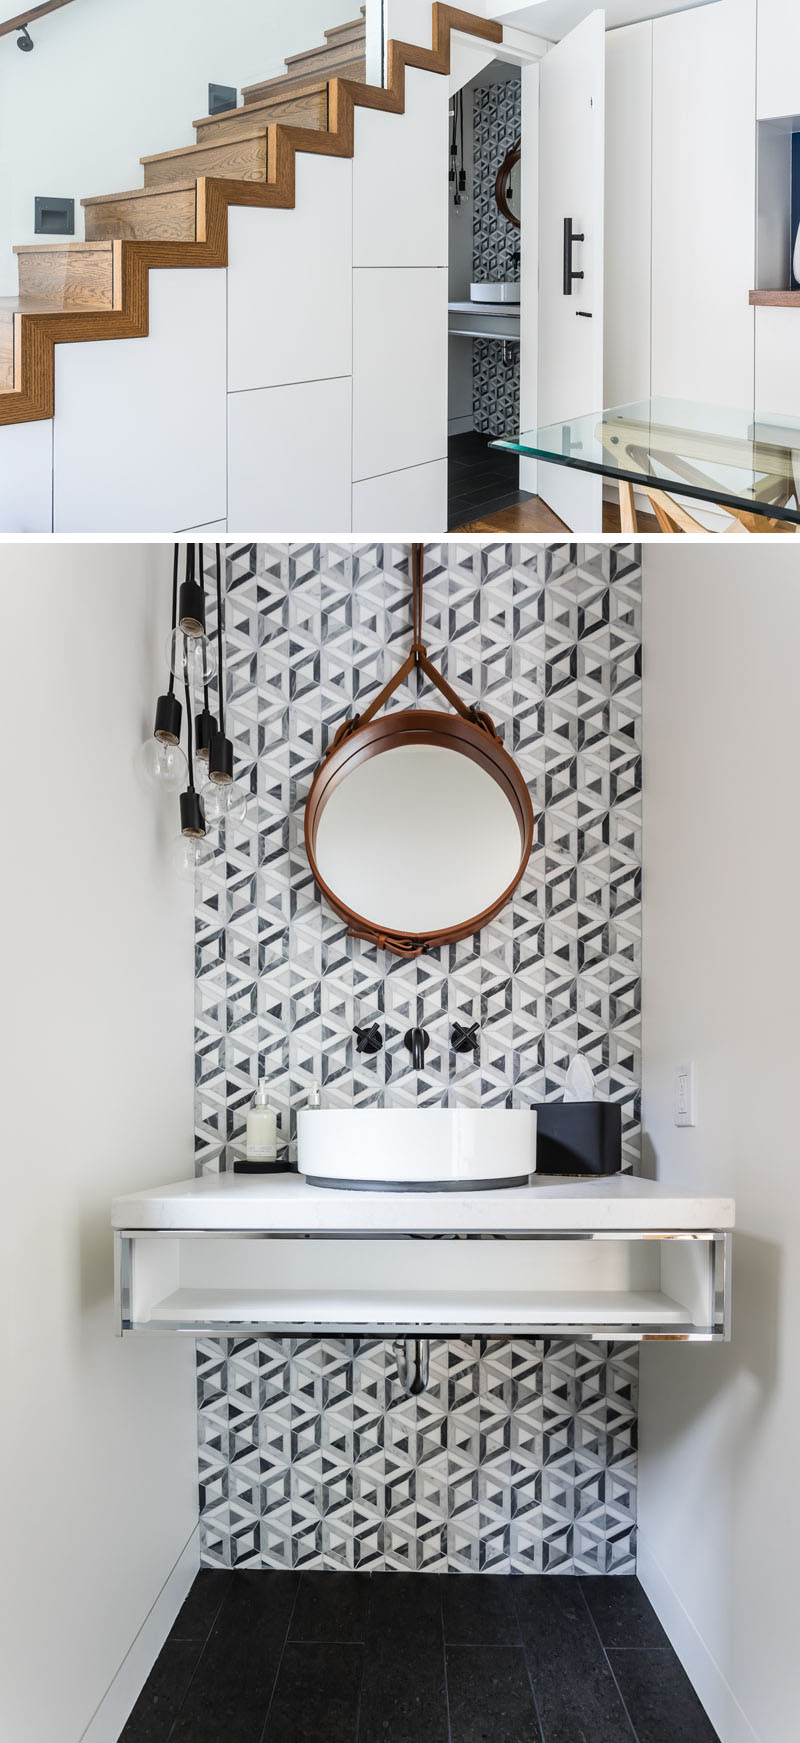 A small powder room designed by JMJ Studios, has a decorative tiled wall and a wall-mounted vanity.